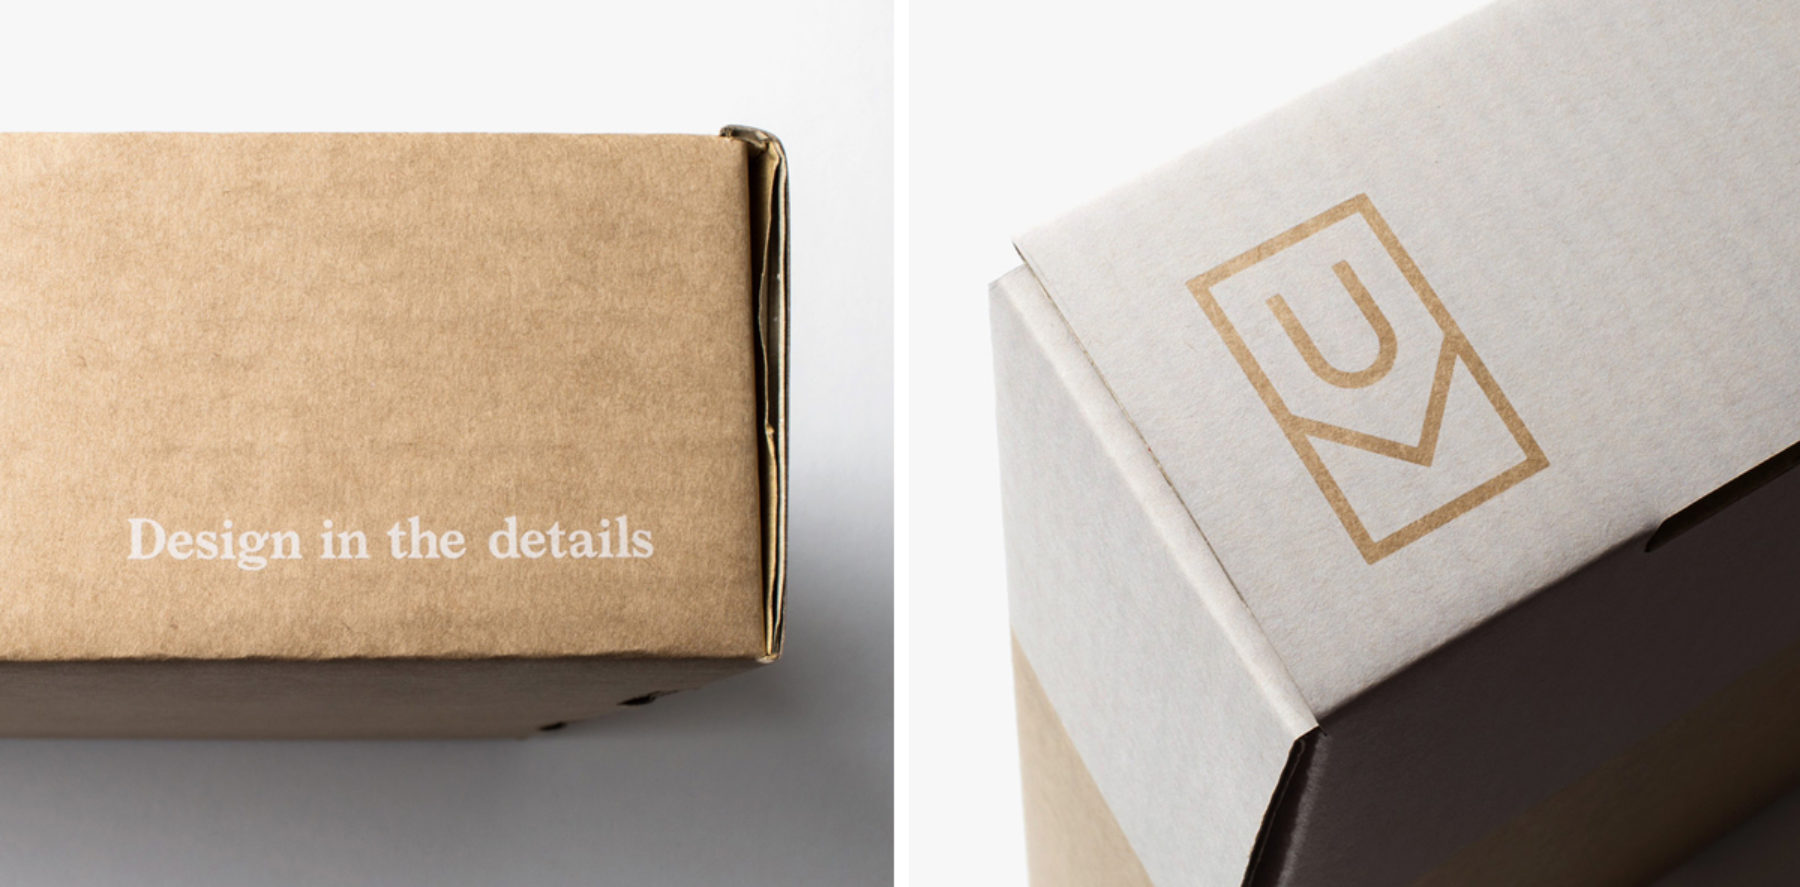 With Their Rebrand, Ugmonk Designed a New Suite of Custom Packaging